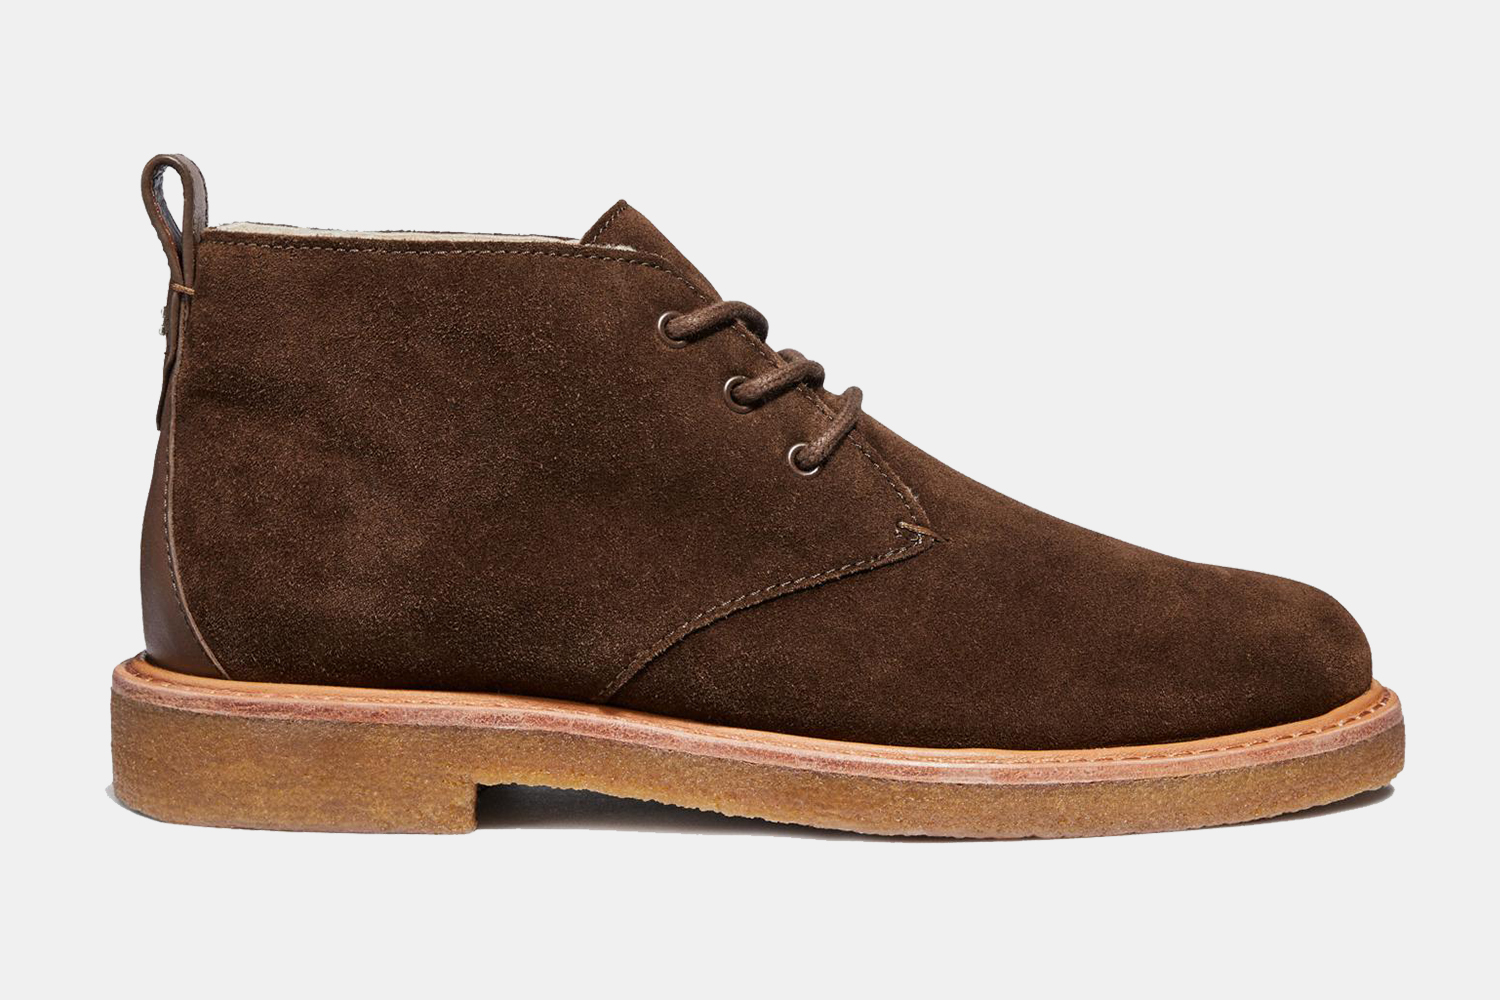 Deal: Take $162 Off Desert Boots, Plus Other Steals During Coach's Sitewide Sale